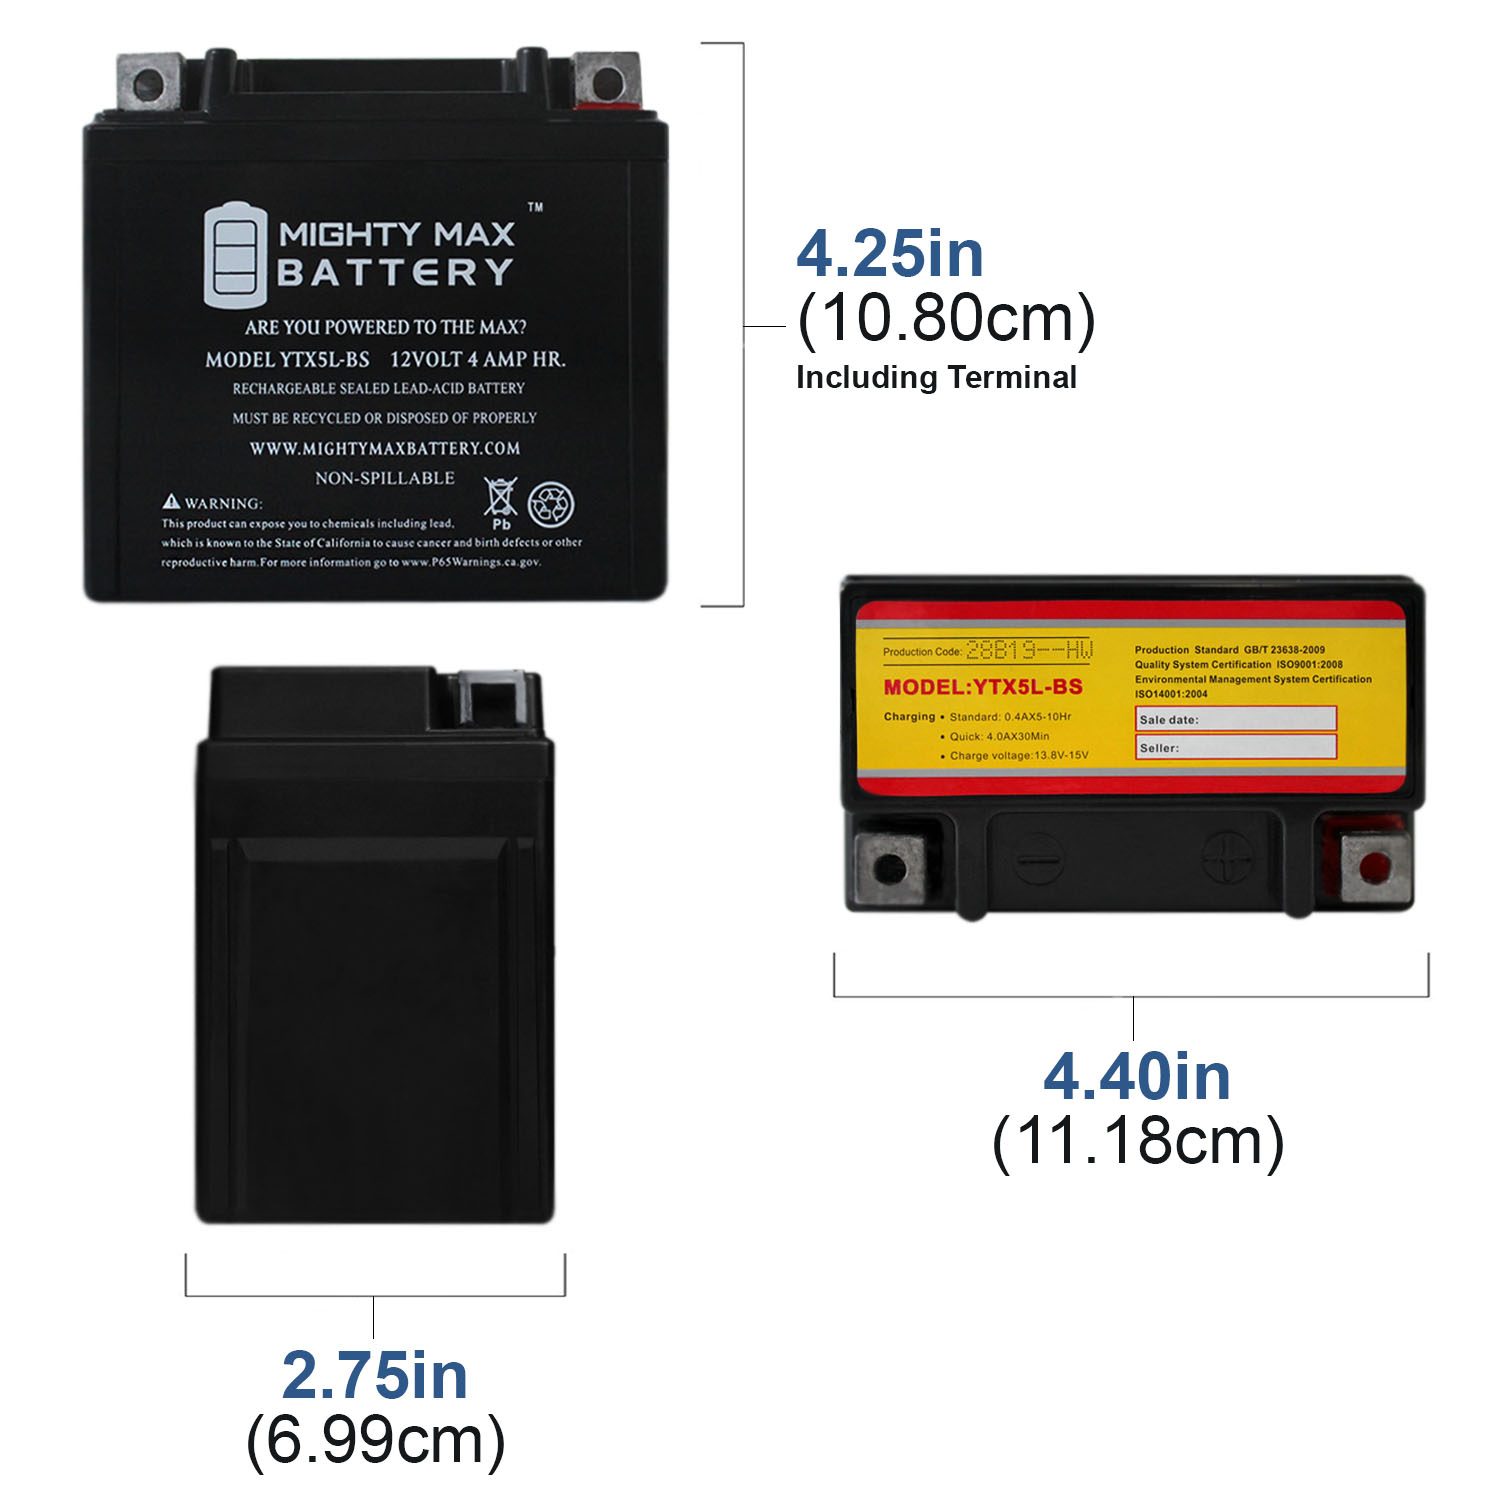 YTX5L-BS MOTORCYCLE BATTERY REPLACEMENT - 12V 4AH - 55 CCA - 3 PACK - 1